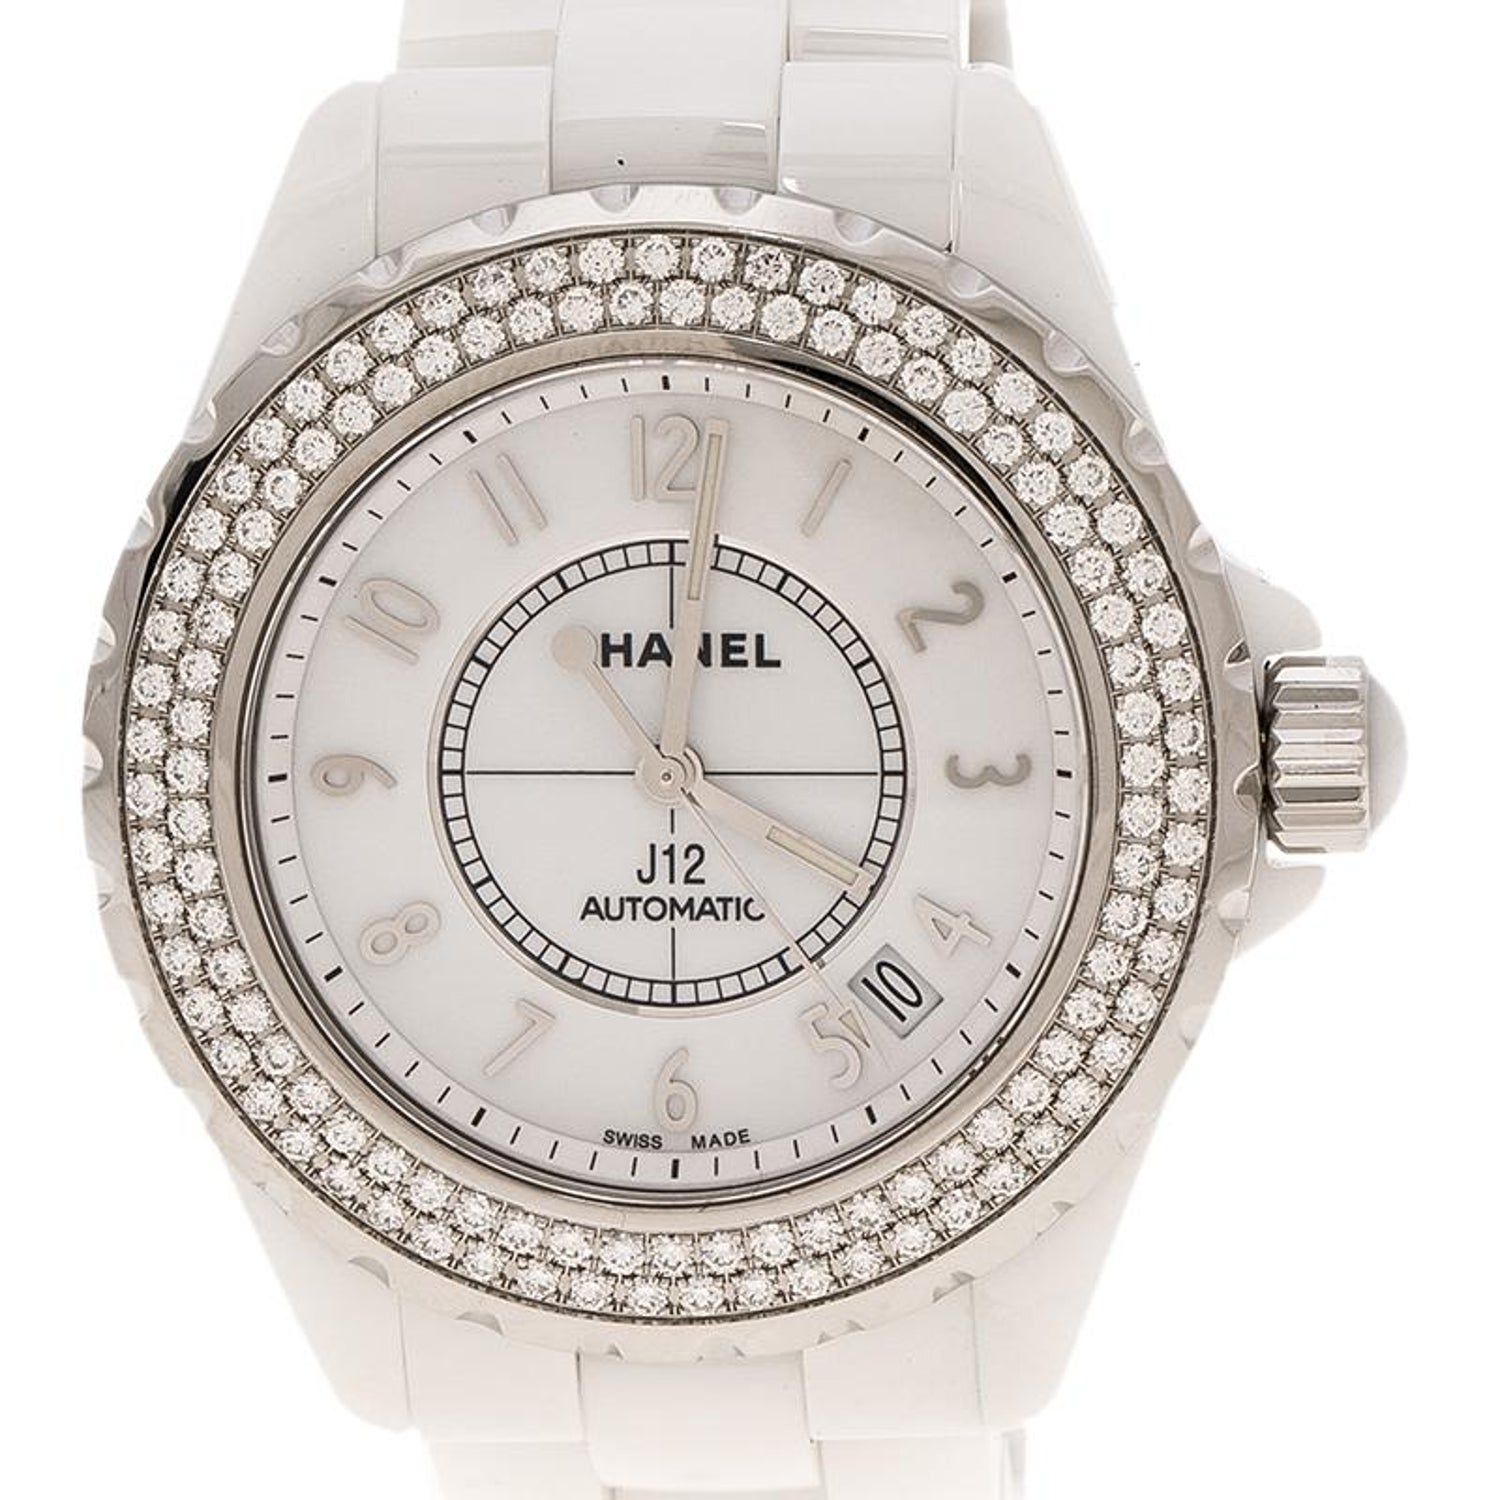 1a6b0e61dd27d Chanel White Ceramic Stainless Steel Diamond J12 Women s Wristwatch 38 mm  For Sale at 1stdibs